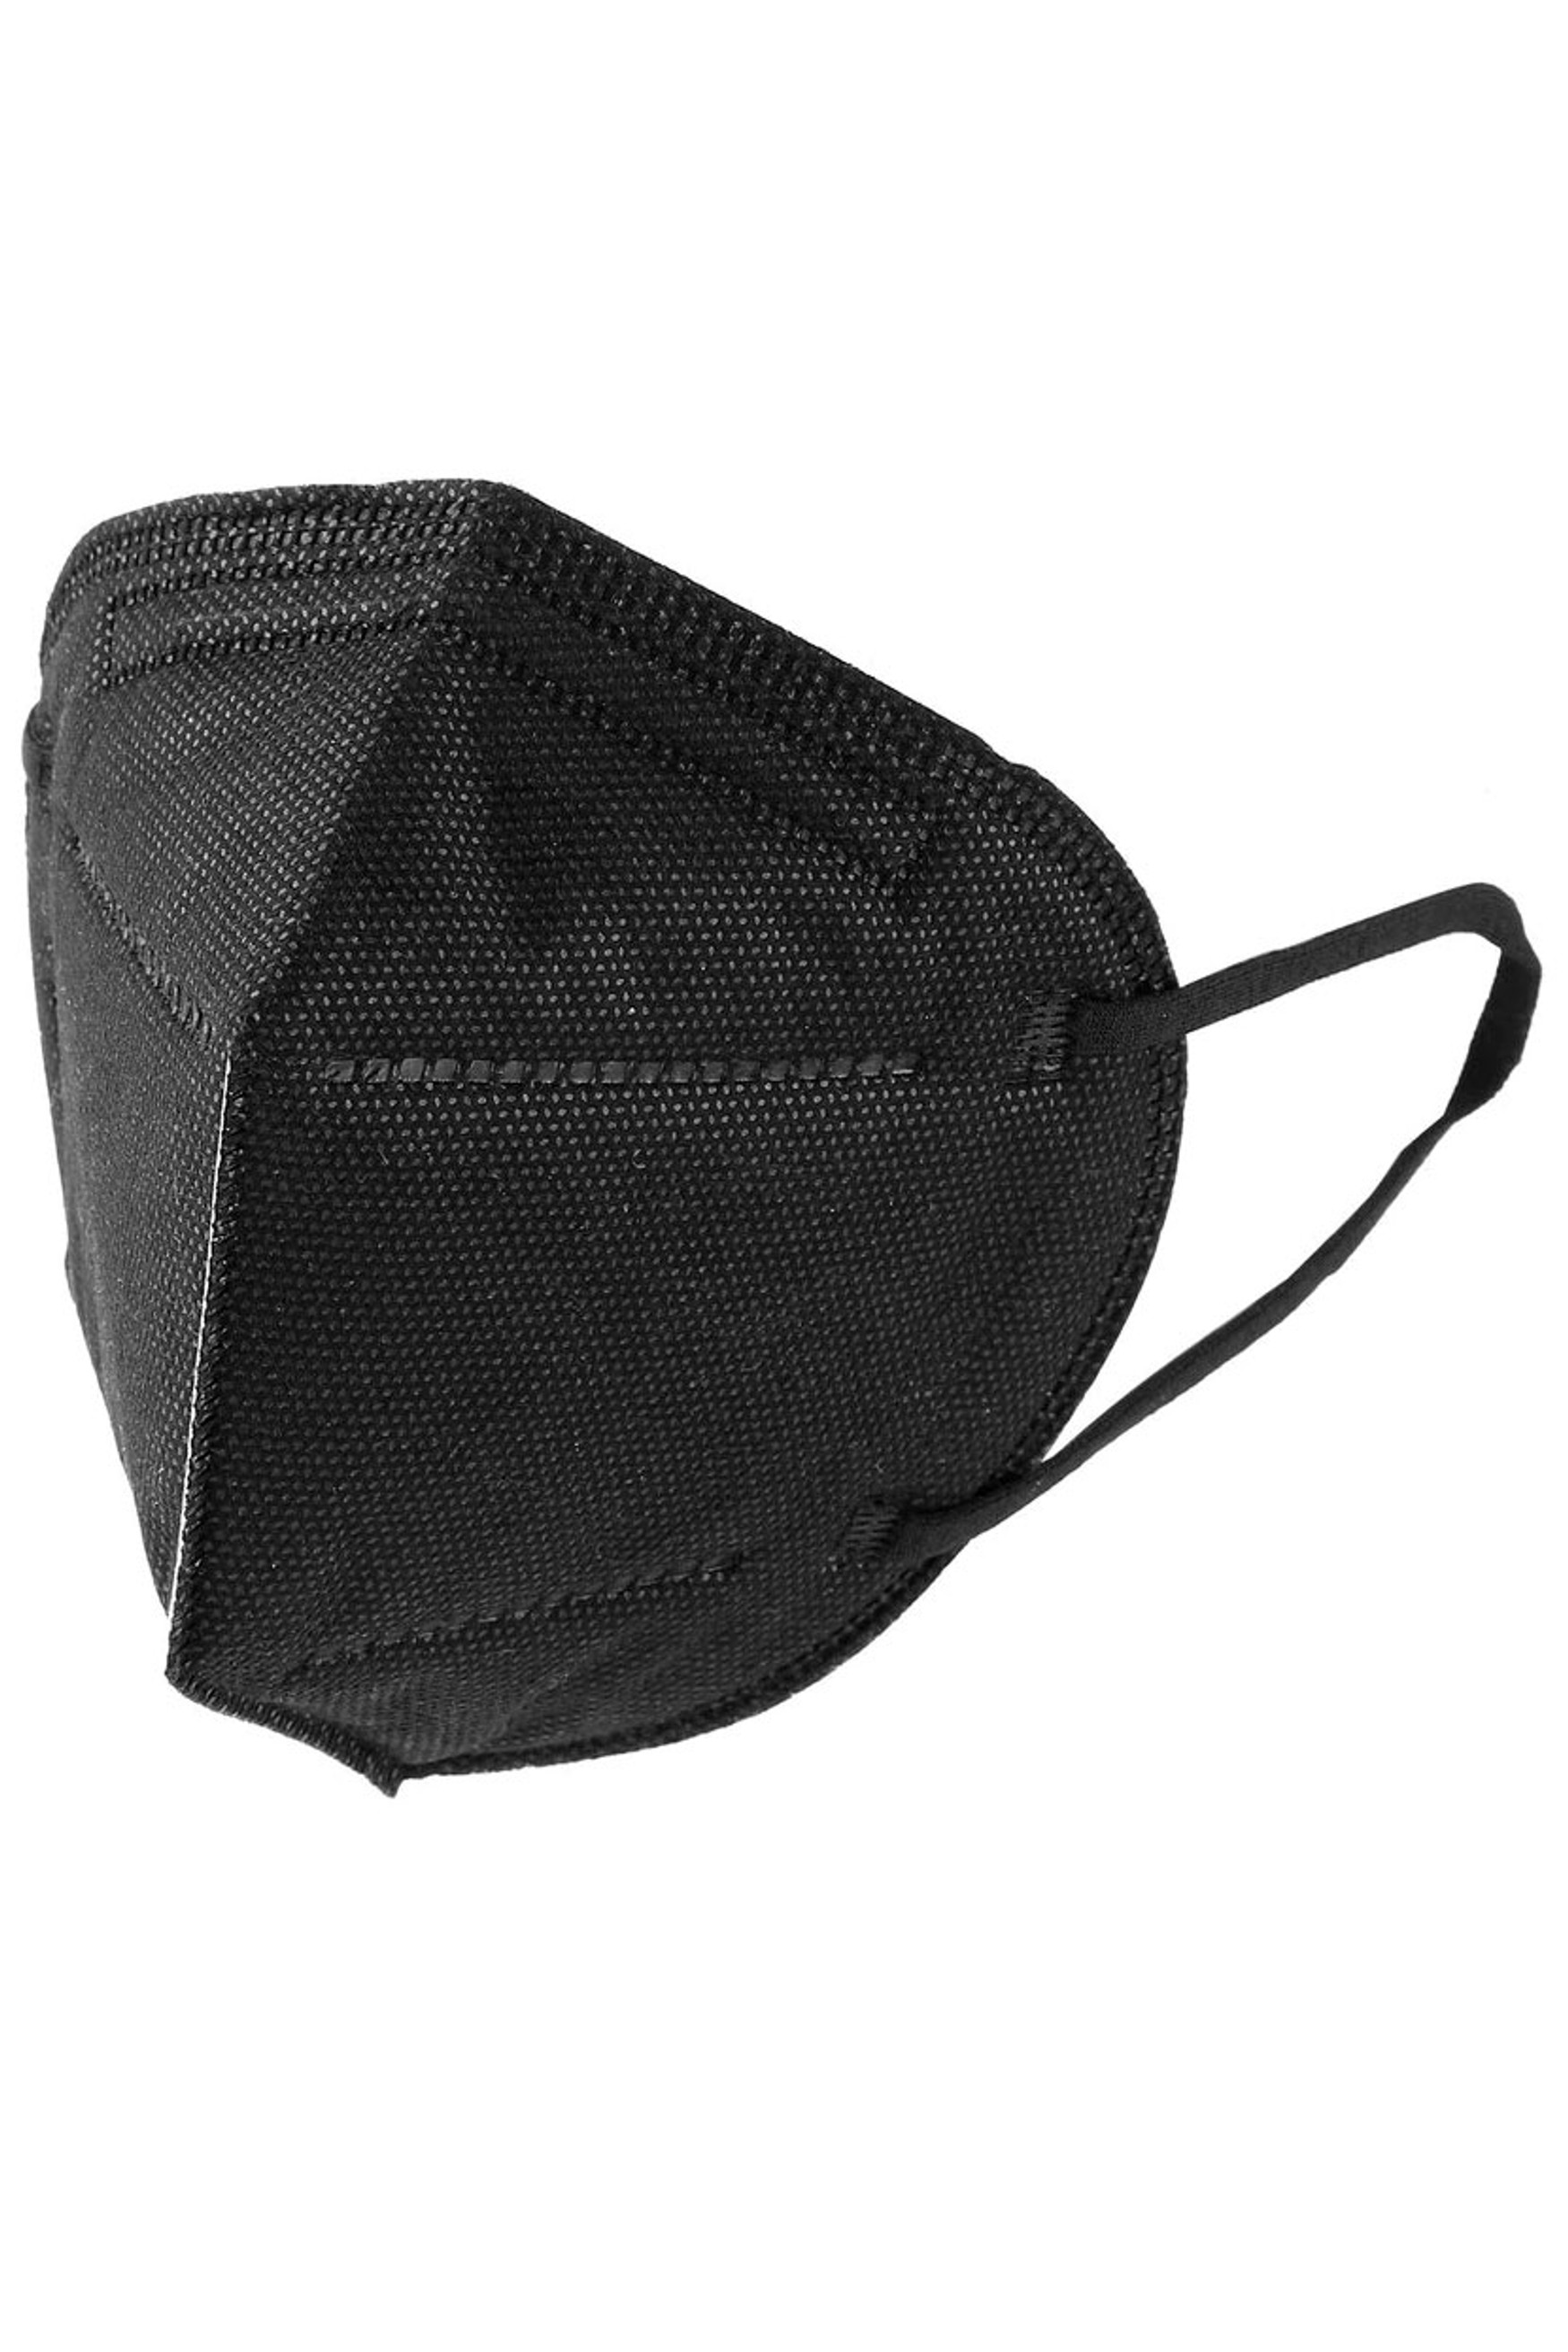 Black KN95 Face Mask- Singles - Individually Wrapped